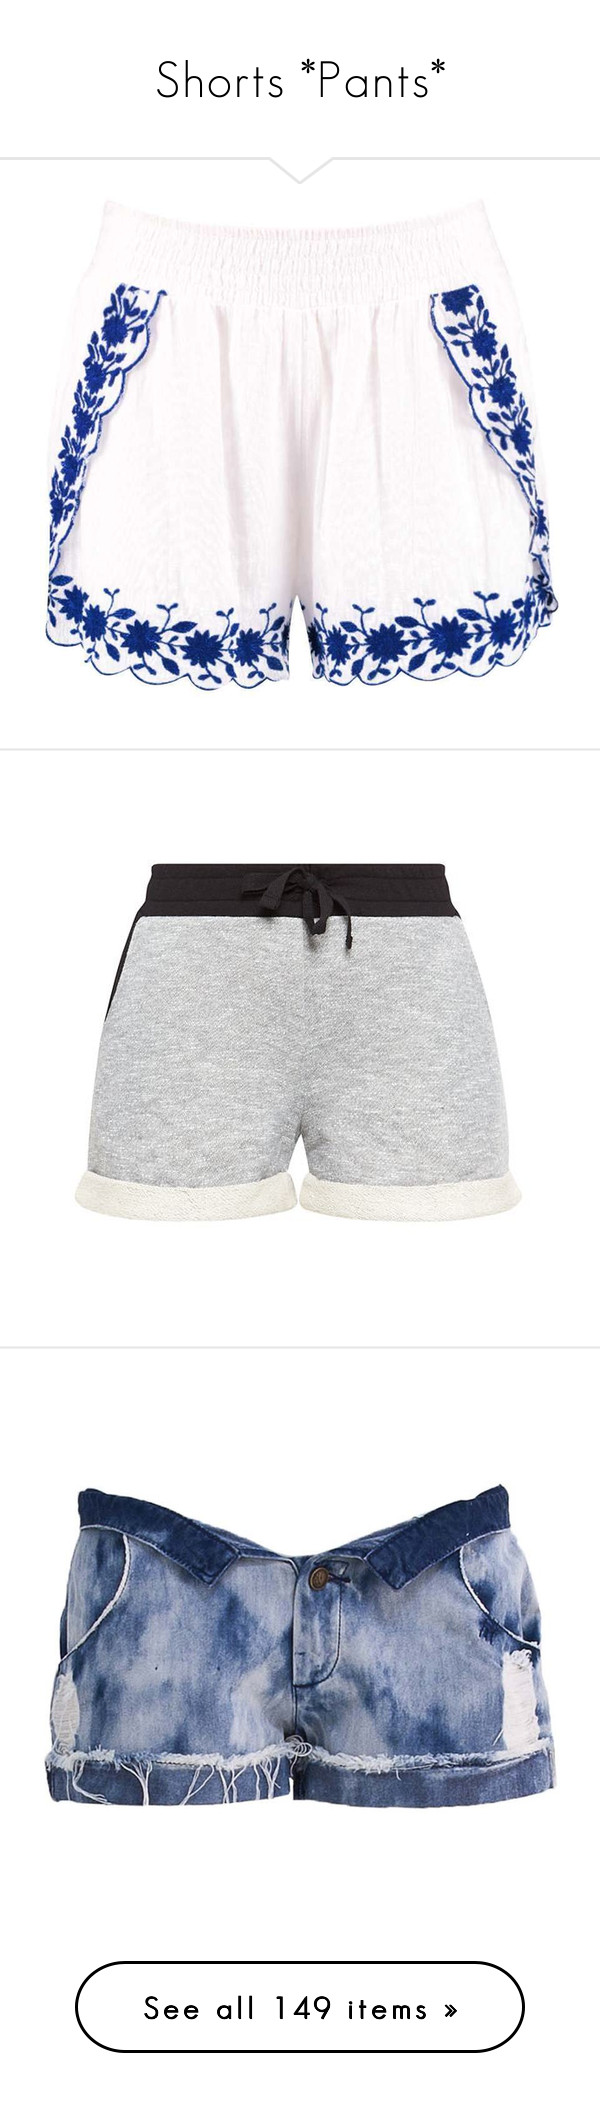 """""""Shorts *Pants*"""" by queenswag245 ❤ liked on Polyvore featuring shorts, fringe shorts, cotton stretch shorts, flat-front shorts, scalloped edge shorts, cotton shorts, grey shorts, pocket shorts, mini shorts and gray shorts"""